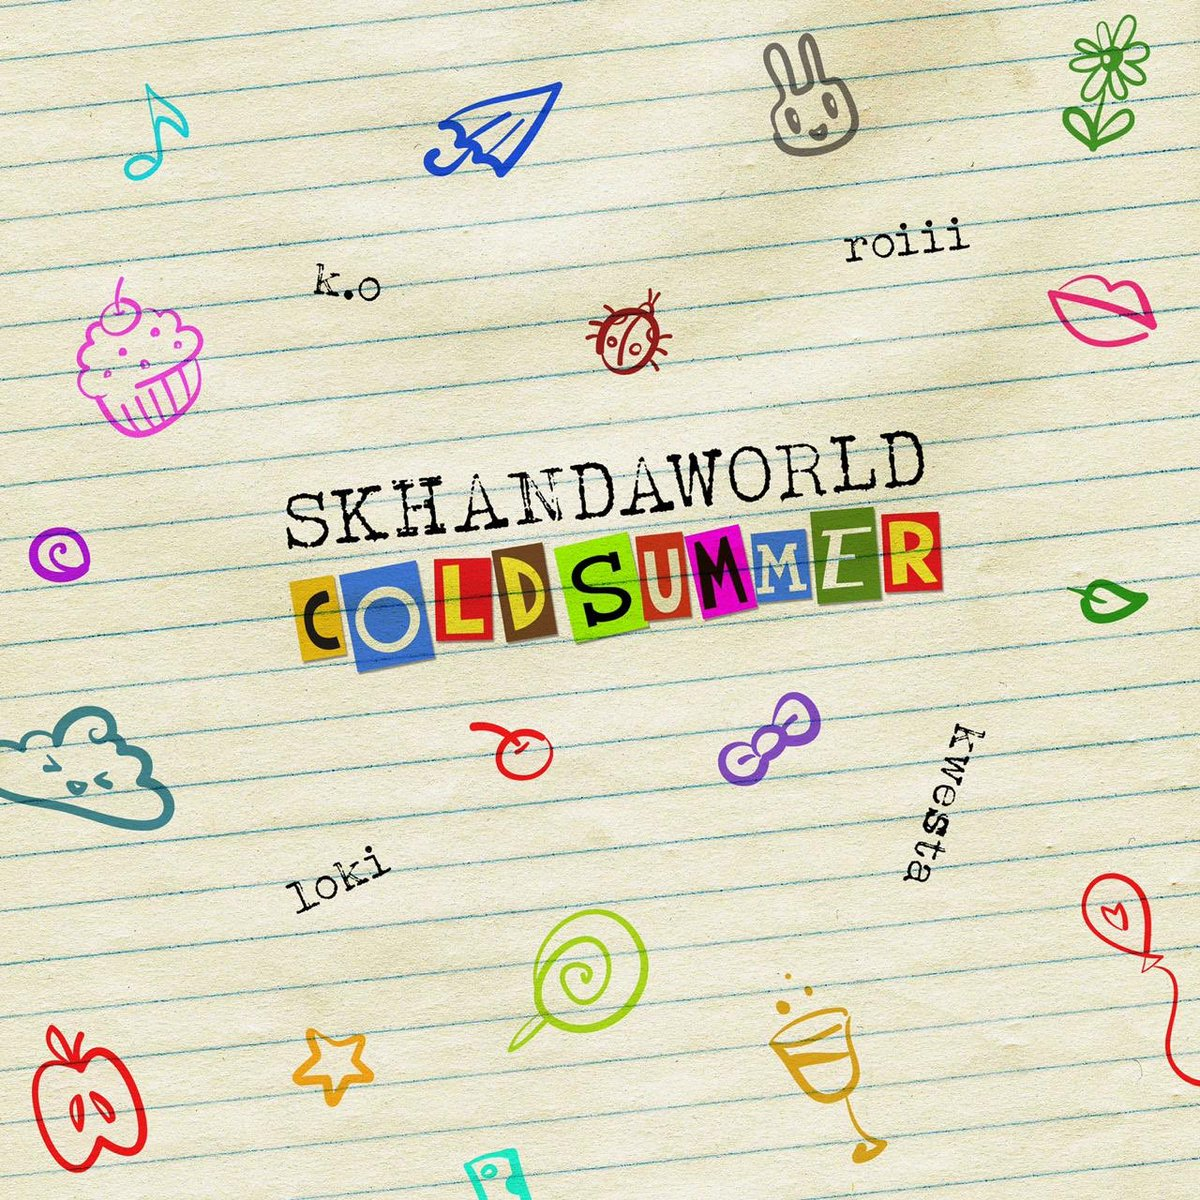 Pre-save #ColdSummer by @Skhandandaworld ft @LokiTunez @1Roiii_ @KwestaDaKAR & me now here https://t.co/tyglMiEYcZ https://t.co/YfwWUI6jSE